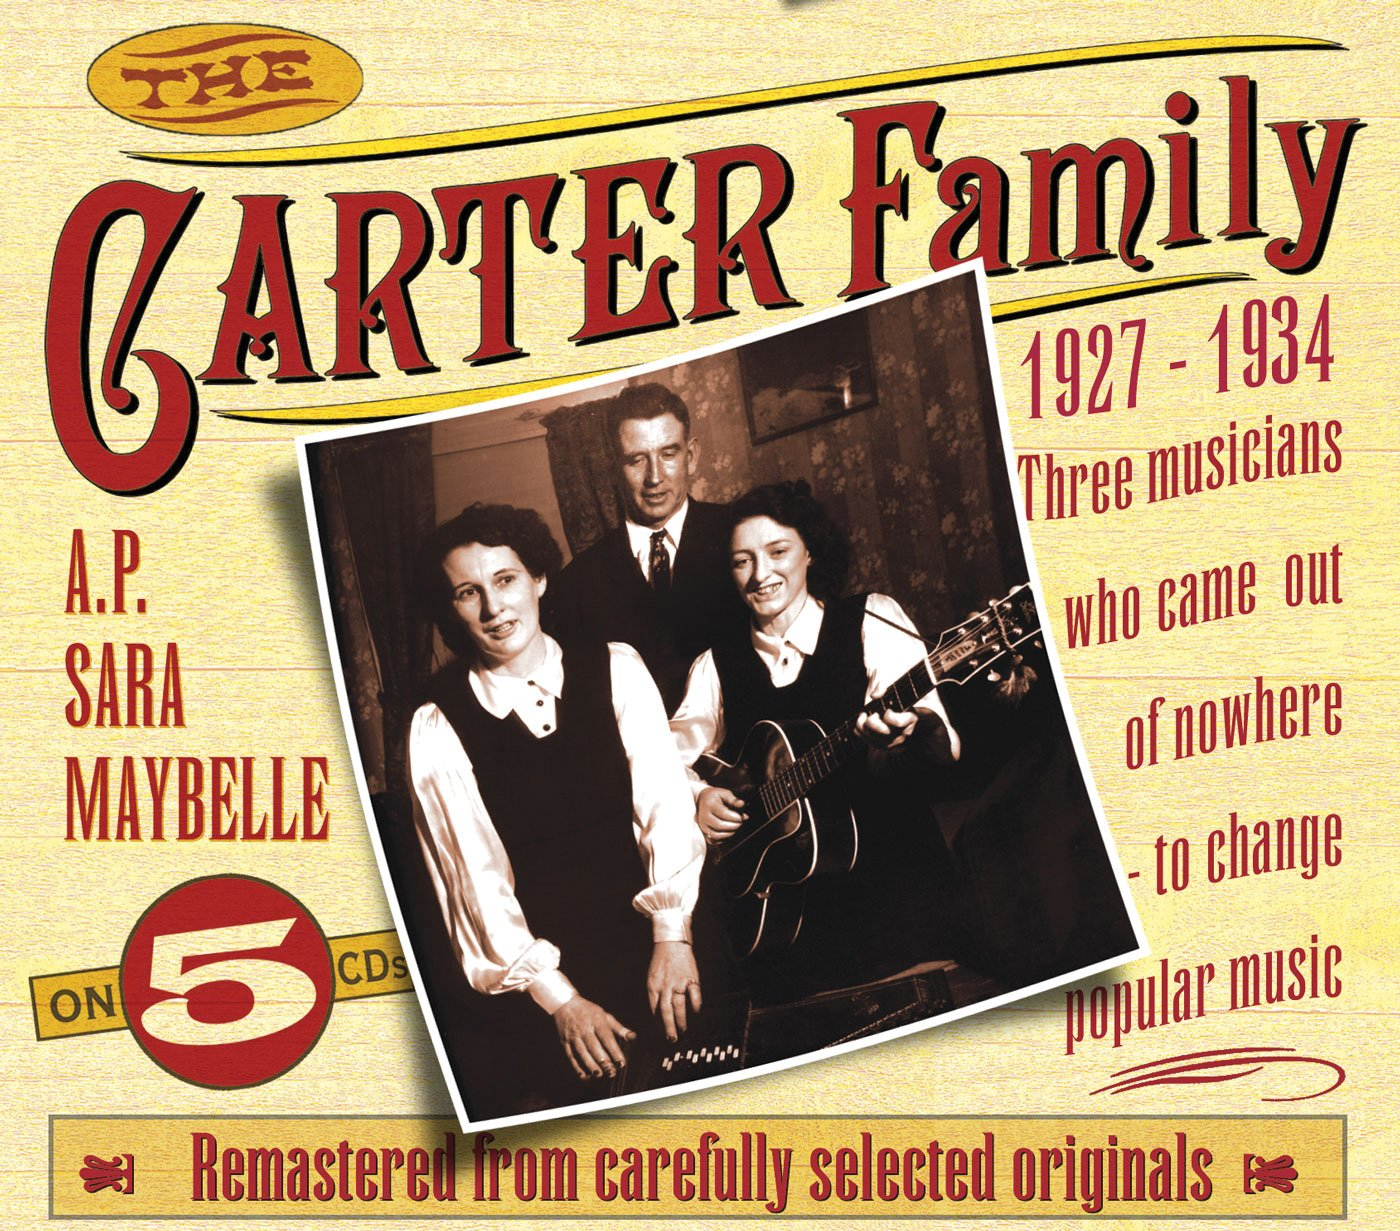 The Carter Family: 1927-1934 by JSP